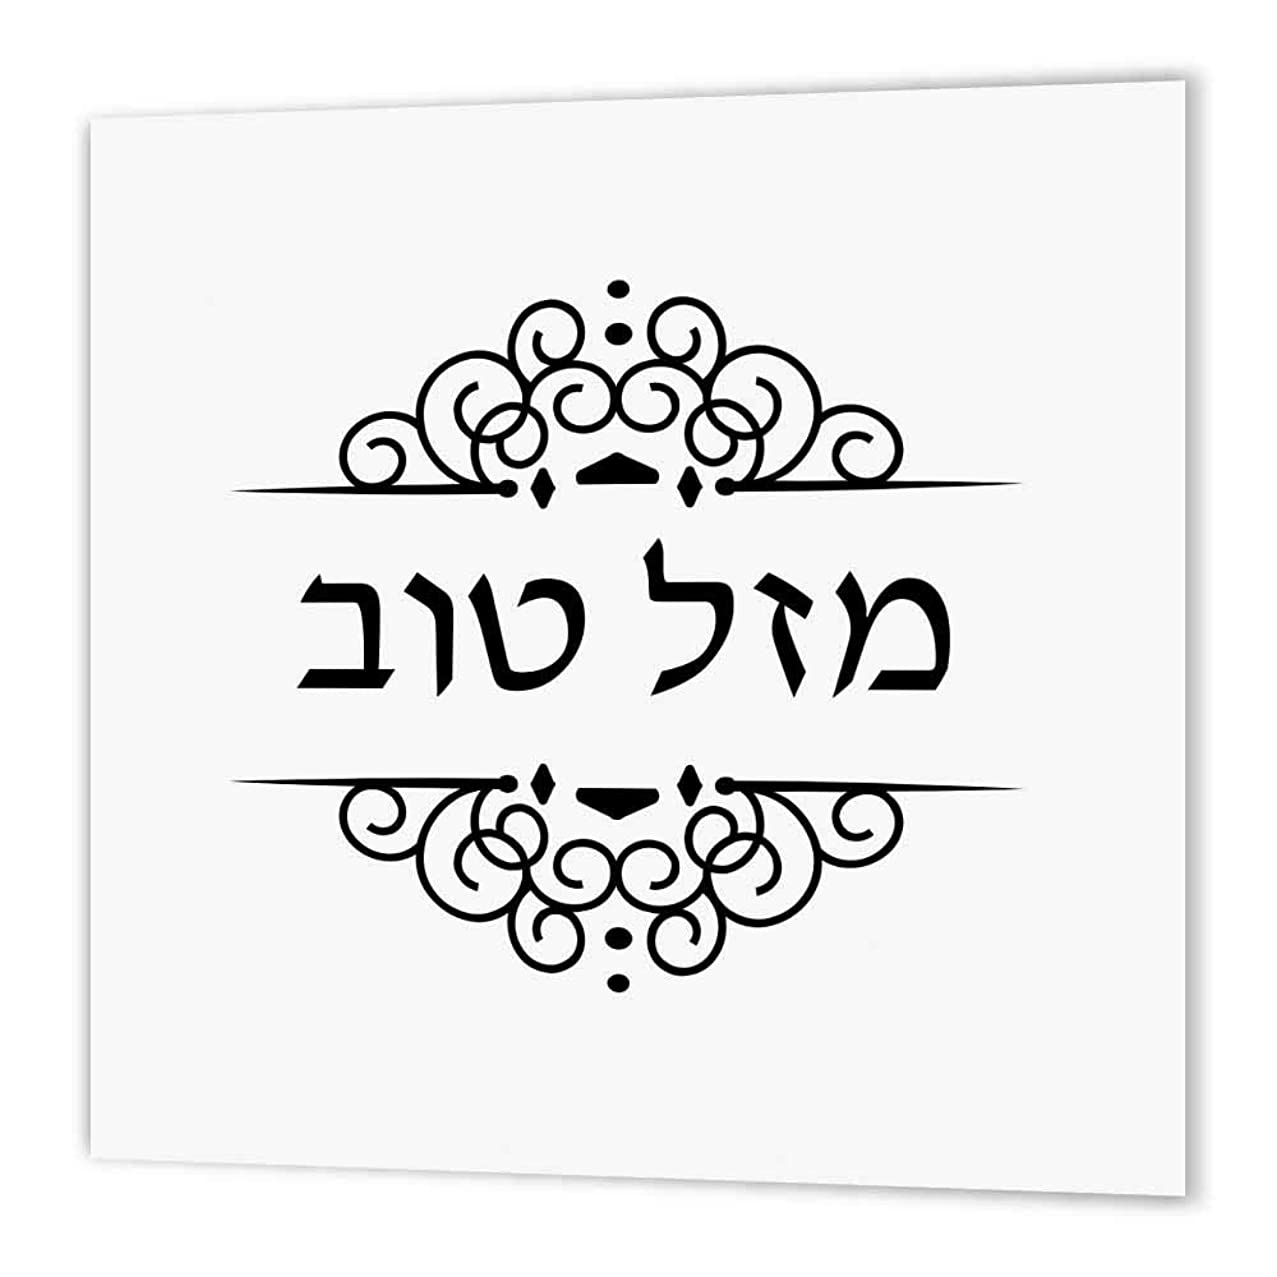 3dRose ht_165158_2 Mazel Tov Hebrew Word for Congratulations or Good Luck Mazeltov Ivrit-Iron on Heat Transfer Paper for White Material, 6 by 6-Inch